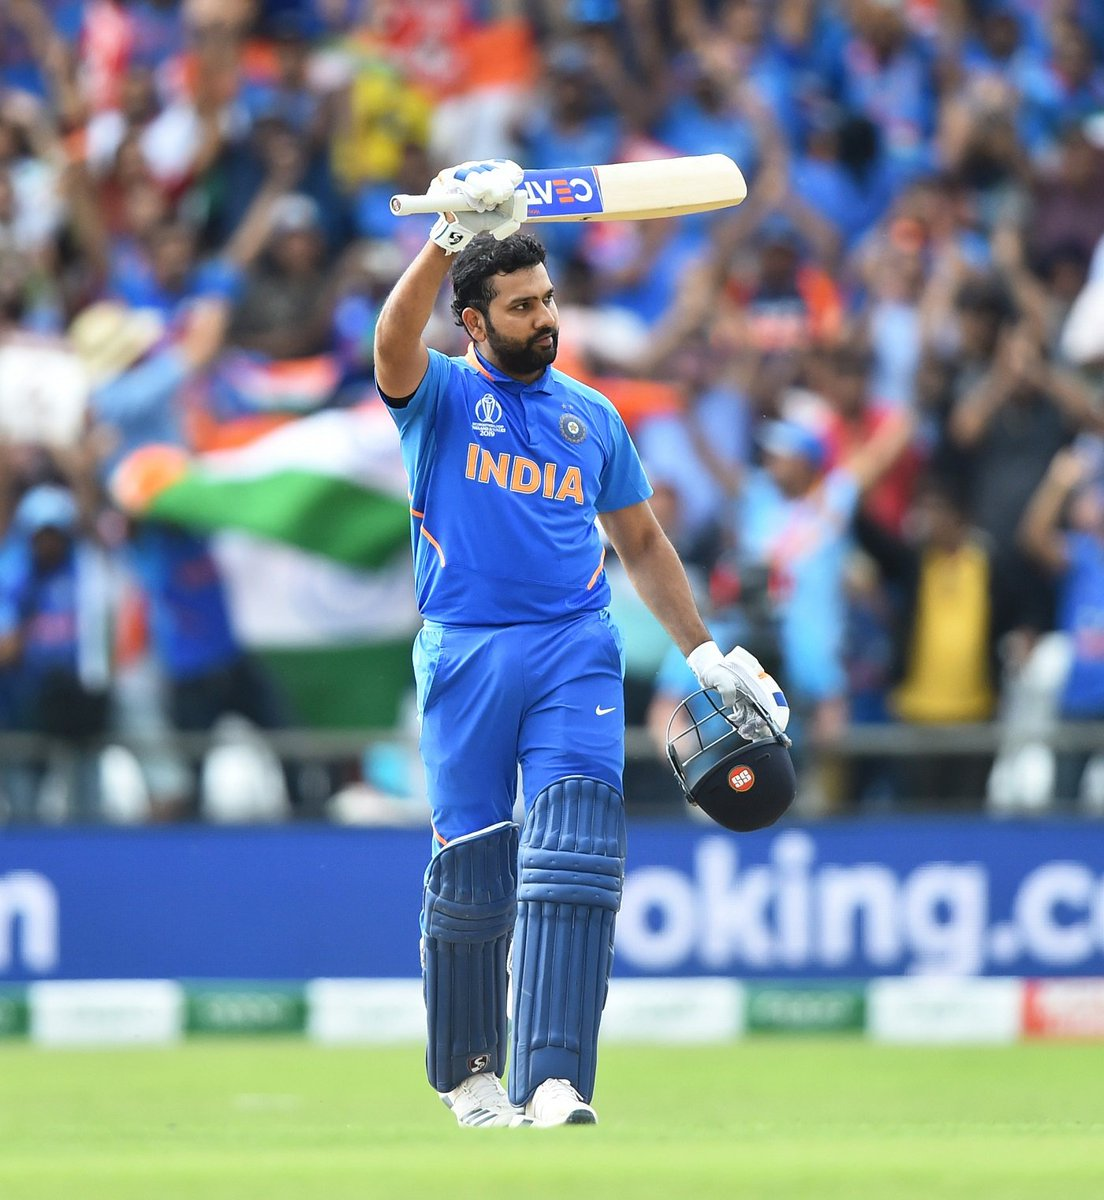 #RohitSharma in This World Cup : Runs- 648 HS - 140 100s - 5 50s - 1 Six - 14 Four - 67 Avg - 81.00 MOM - 4 #Hitman #TeamIndia #CWC19 @ImRo45 @BCCI @cricketworldcup